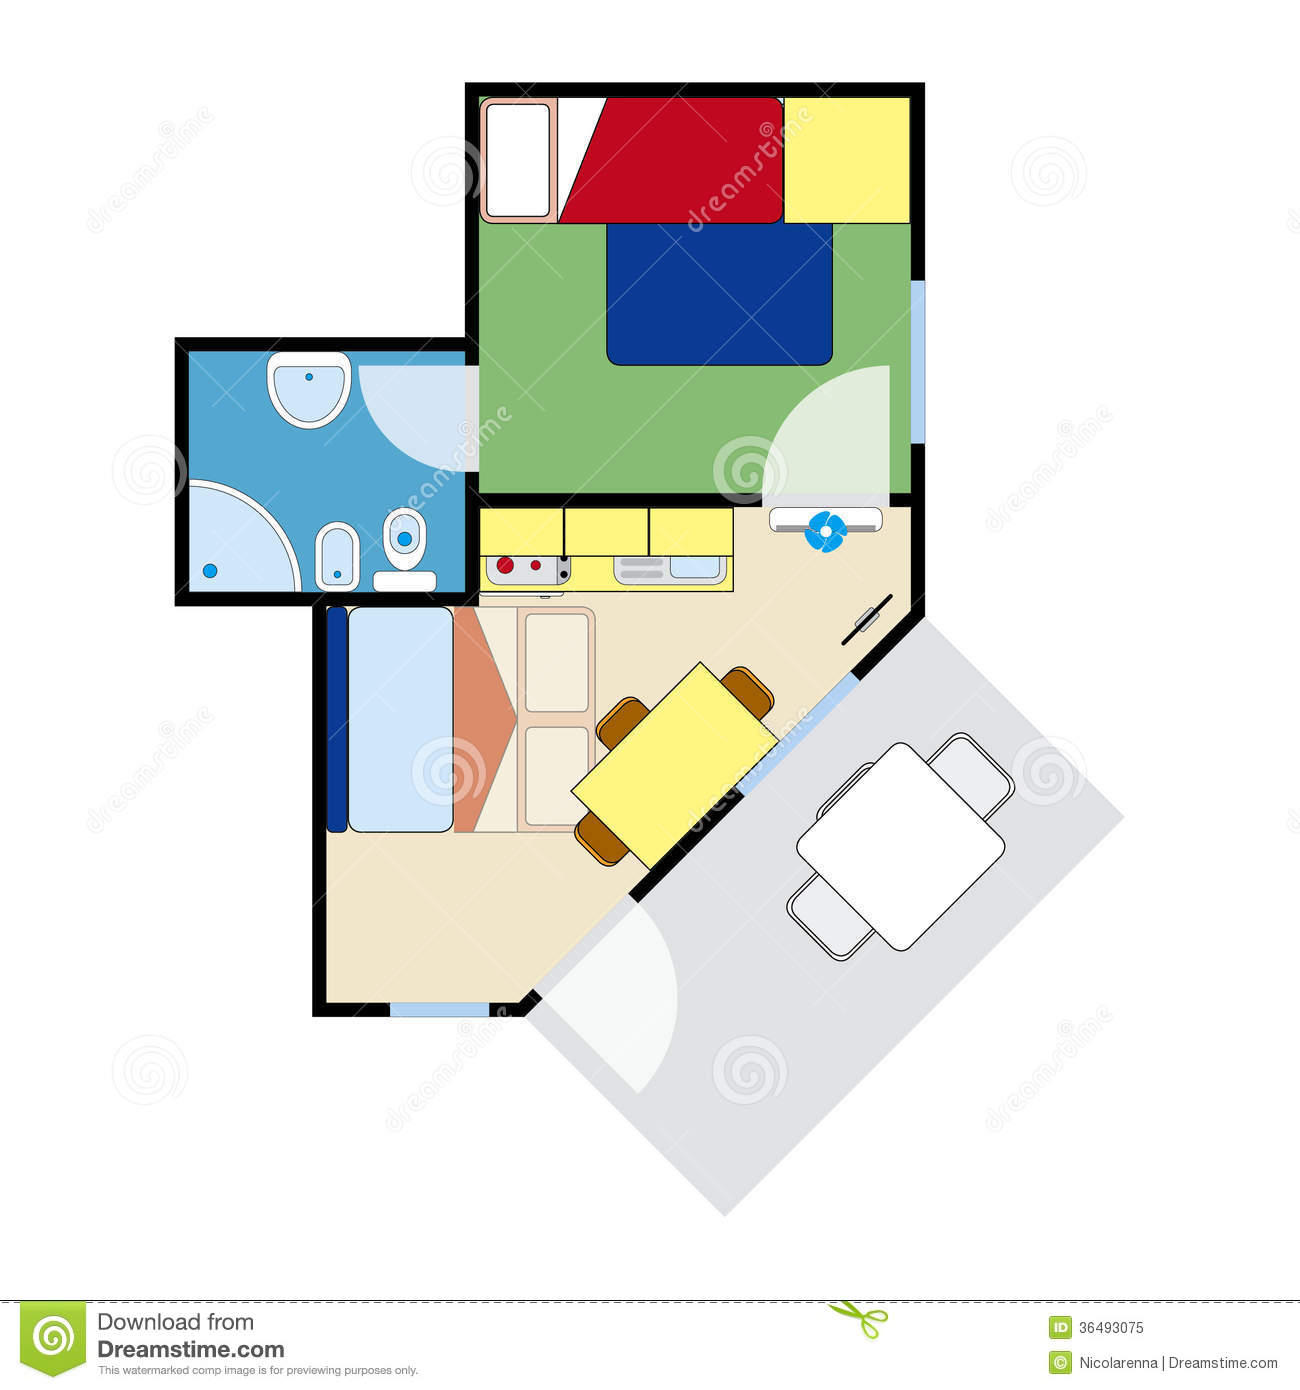 Apartment plan royalty free stock photo image 36493075 for Apartment stock plans